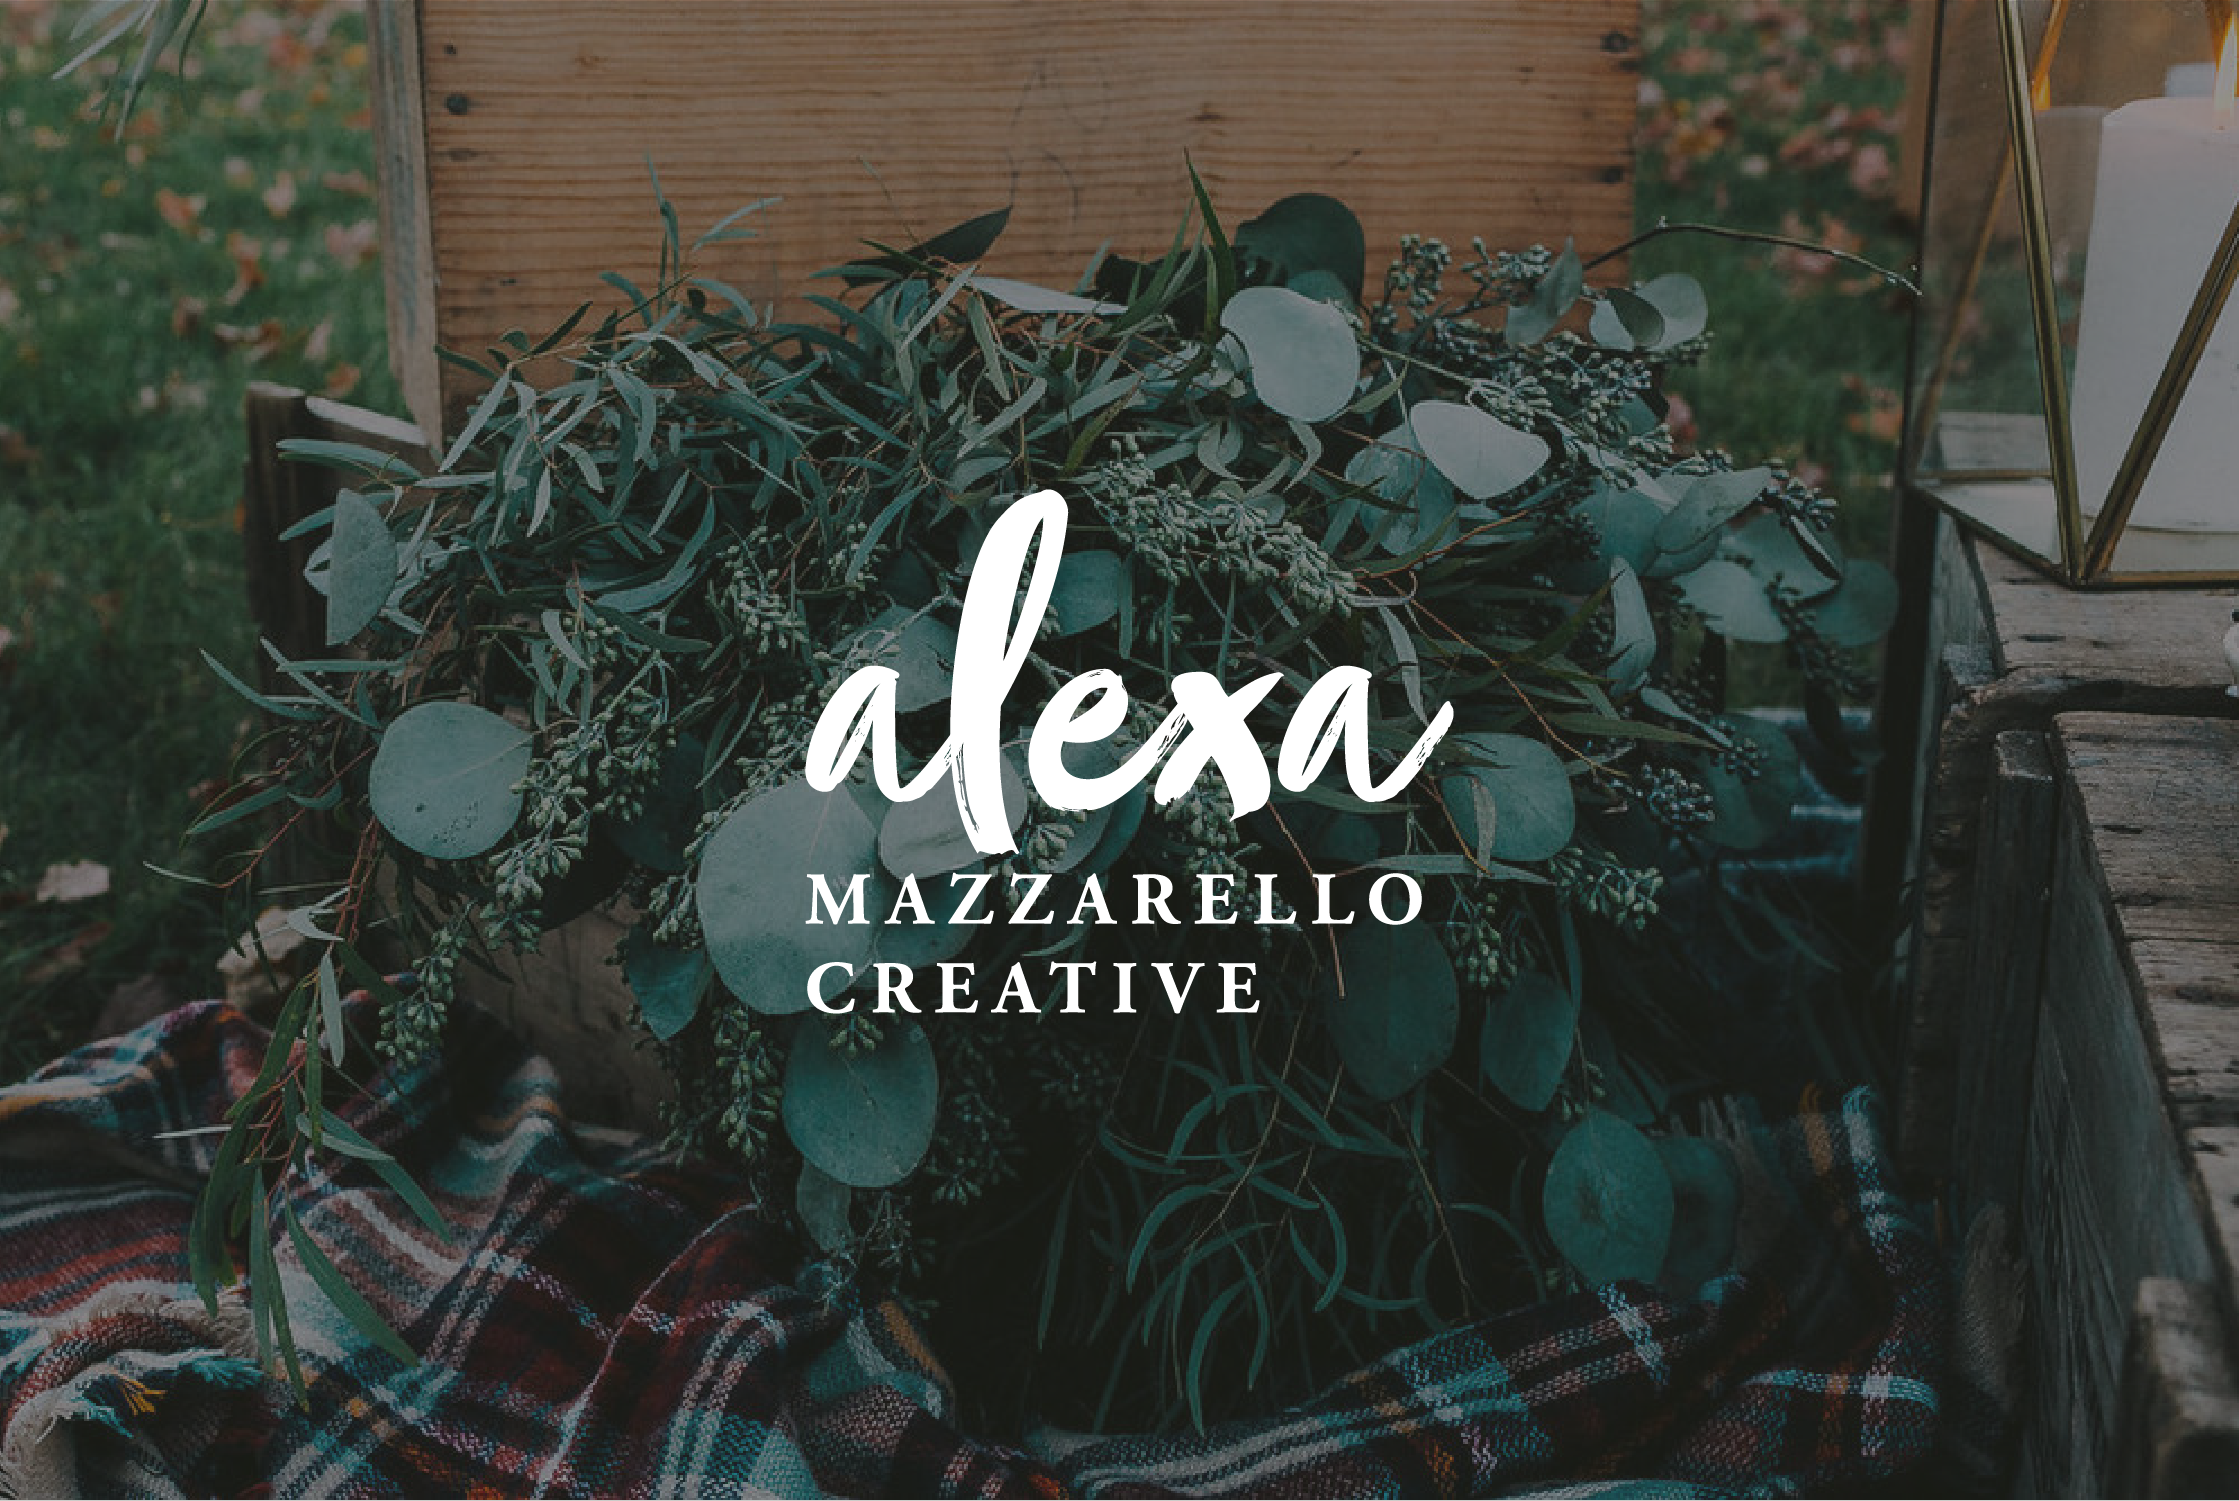 Alexa Mazzarello Creative logo shown imposed on a large bouquet of green leaves and florals